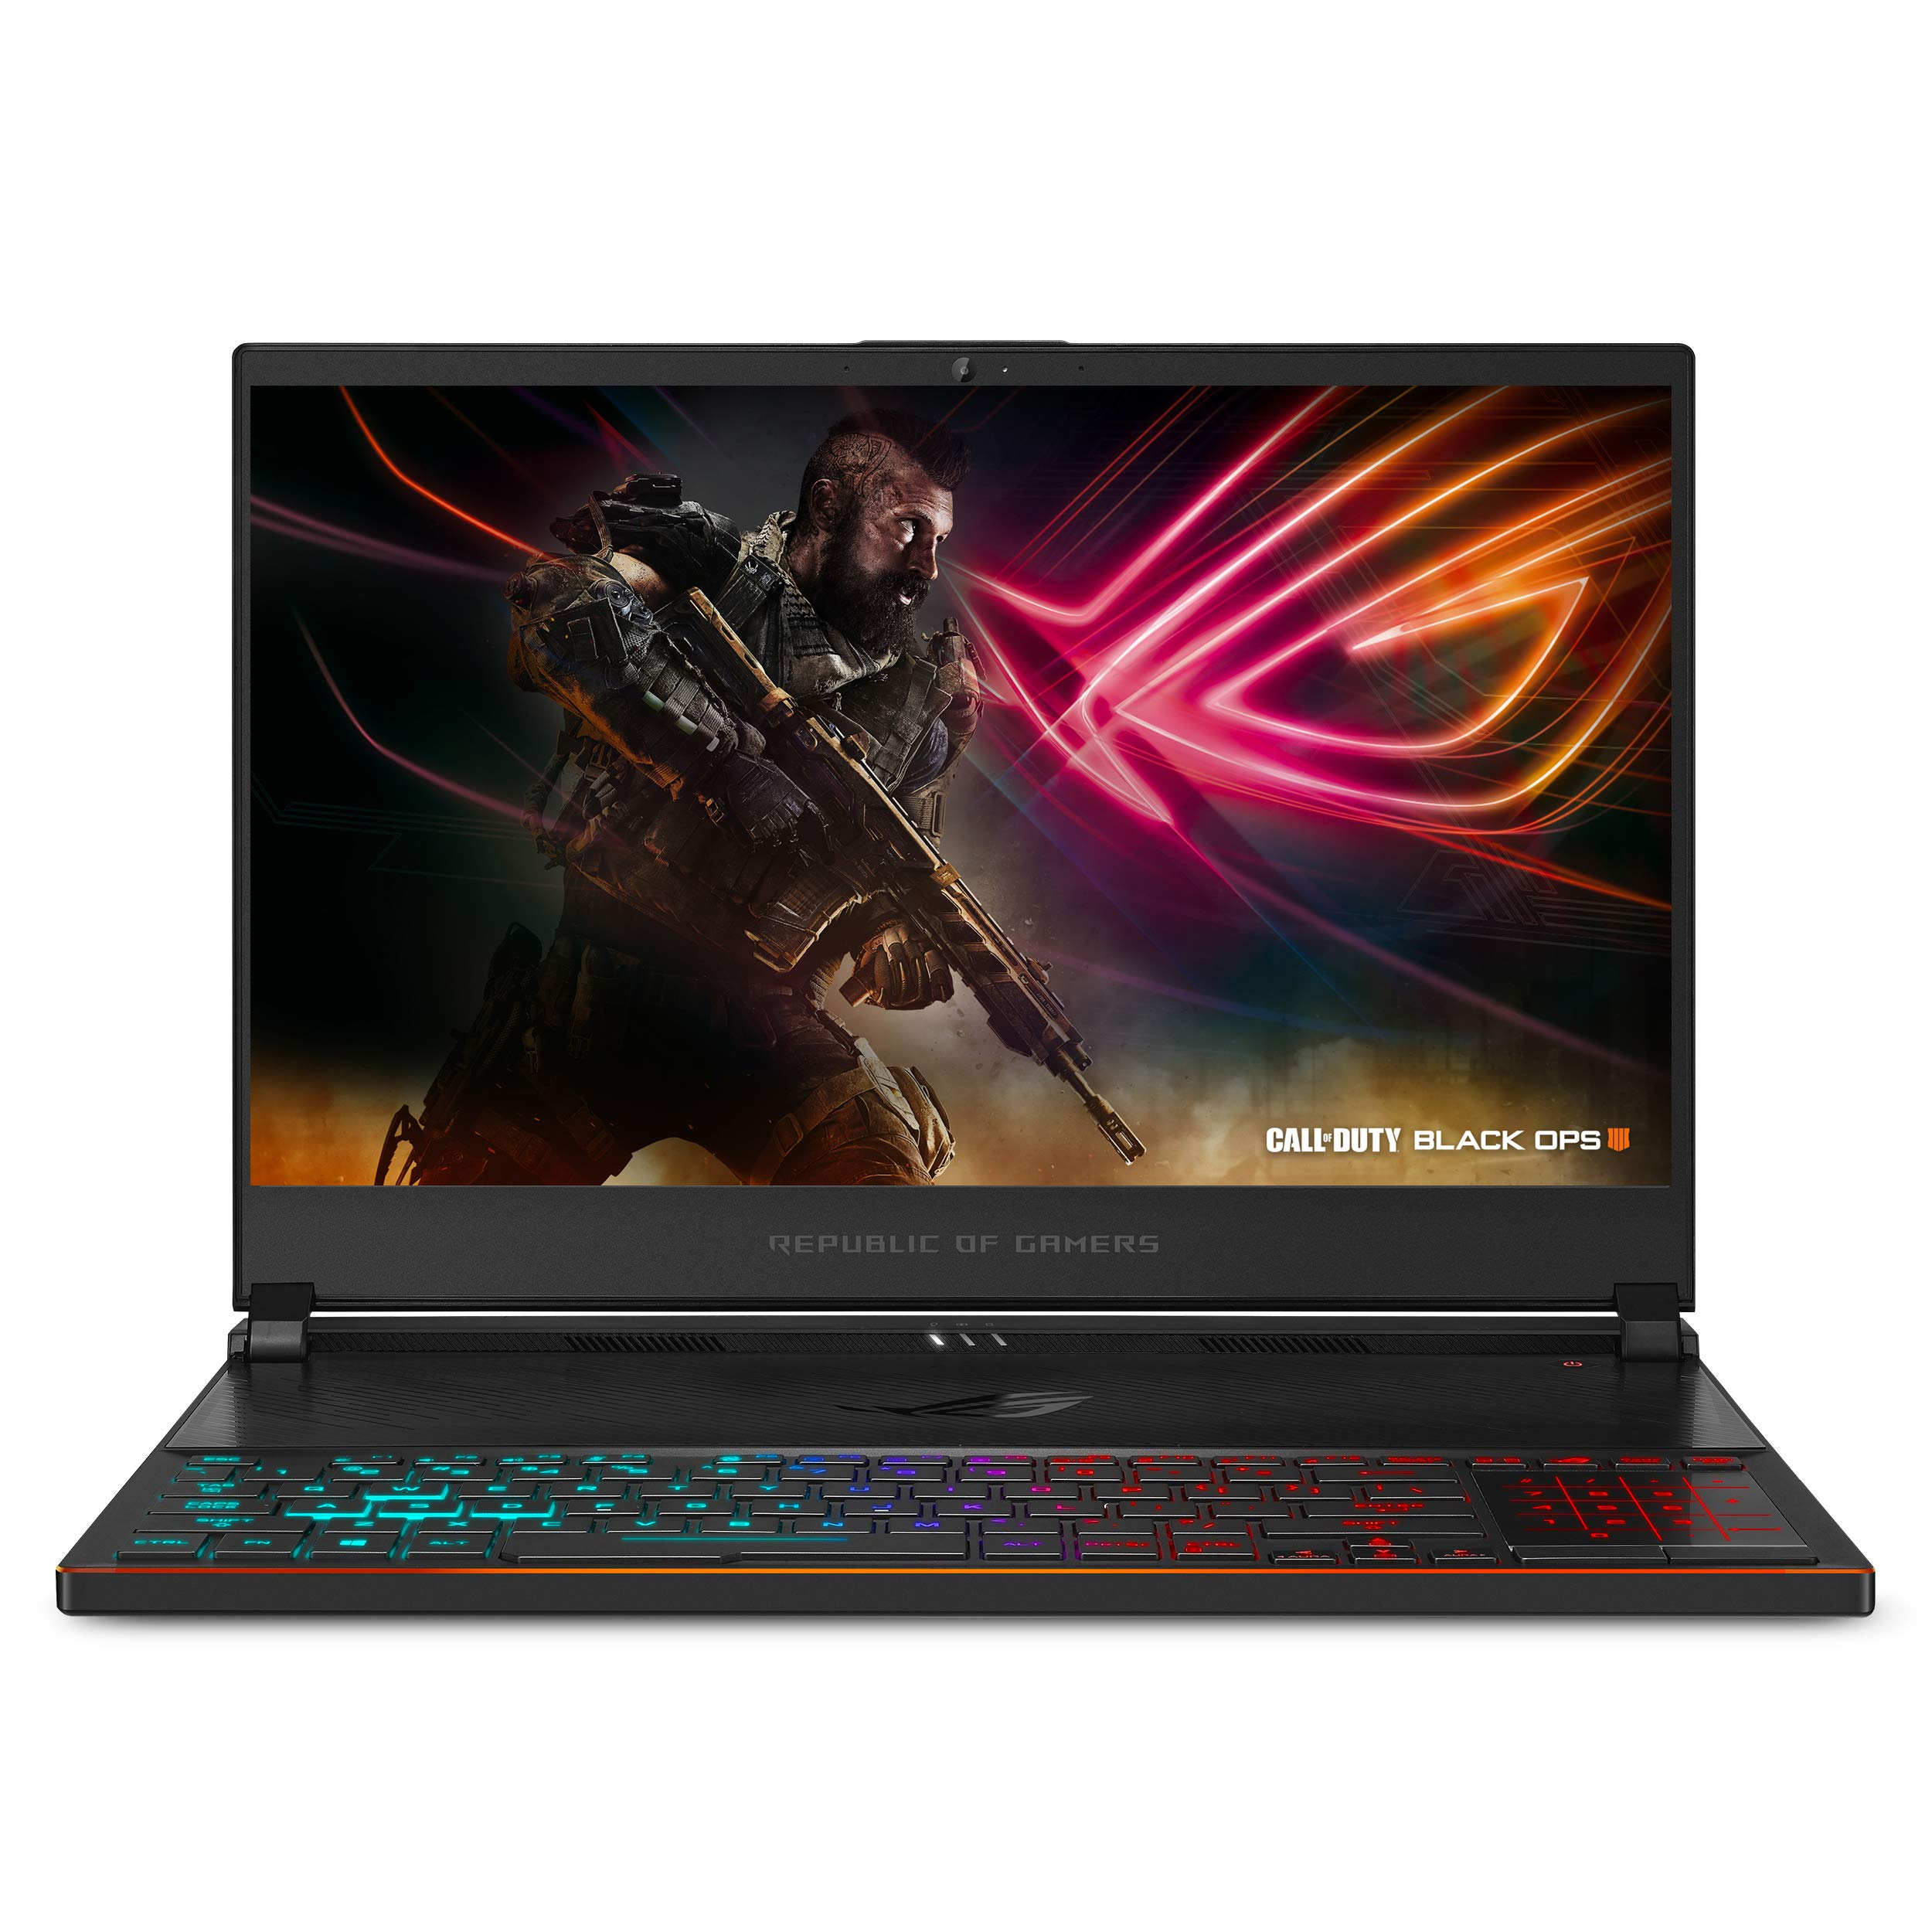 "ASUS ROG Zephyrus S Ultra Slim Gaming PC Laptop, 15.6"" 144Hz IPS-Type, Intel i7-8750H Processor, GeForce GTX 1070, 16GB…"